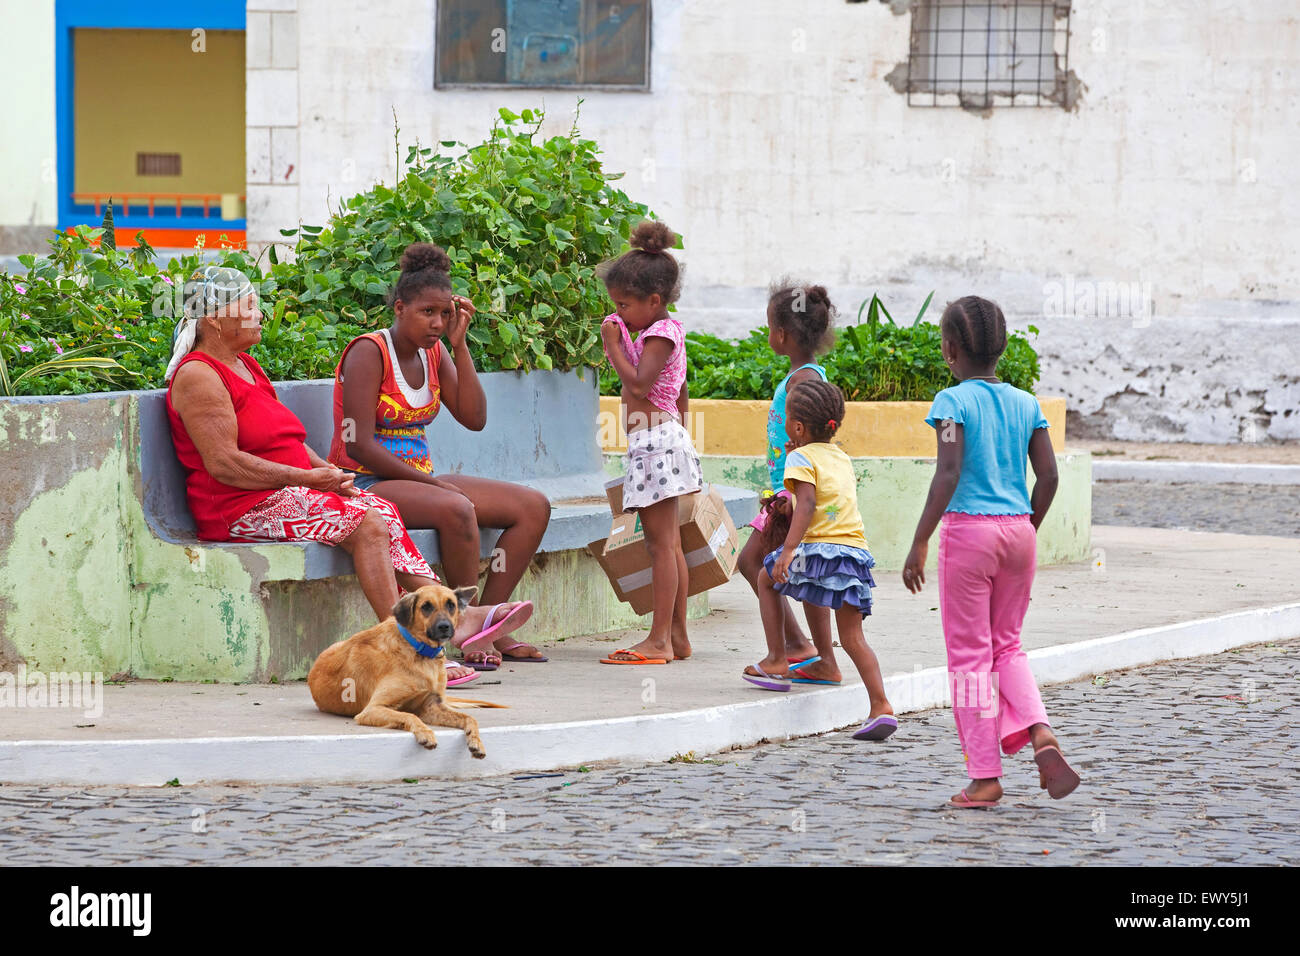 Old Creole woman and children in the fishing village Palmeira on the island of Sal, Cape Verde / Cabo Verde, Western - Stock Image